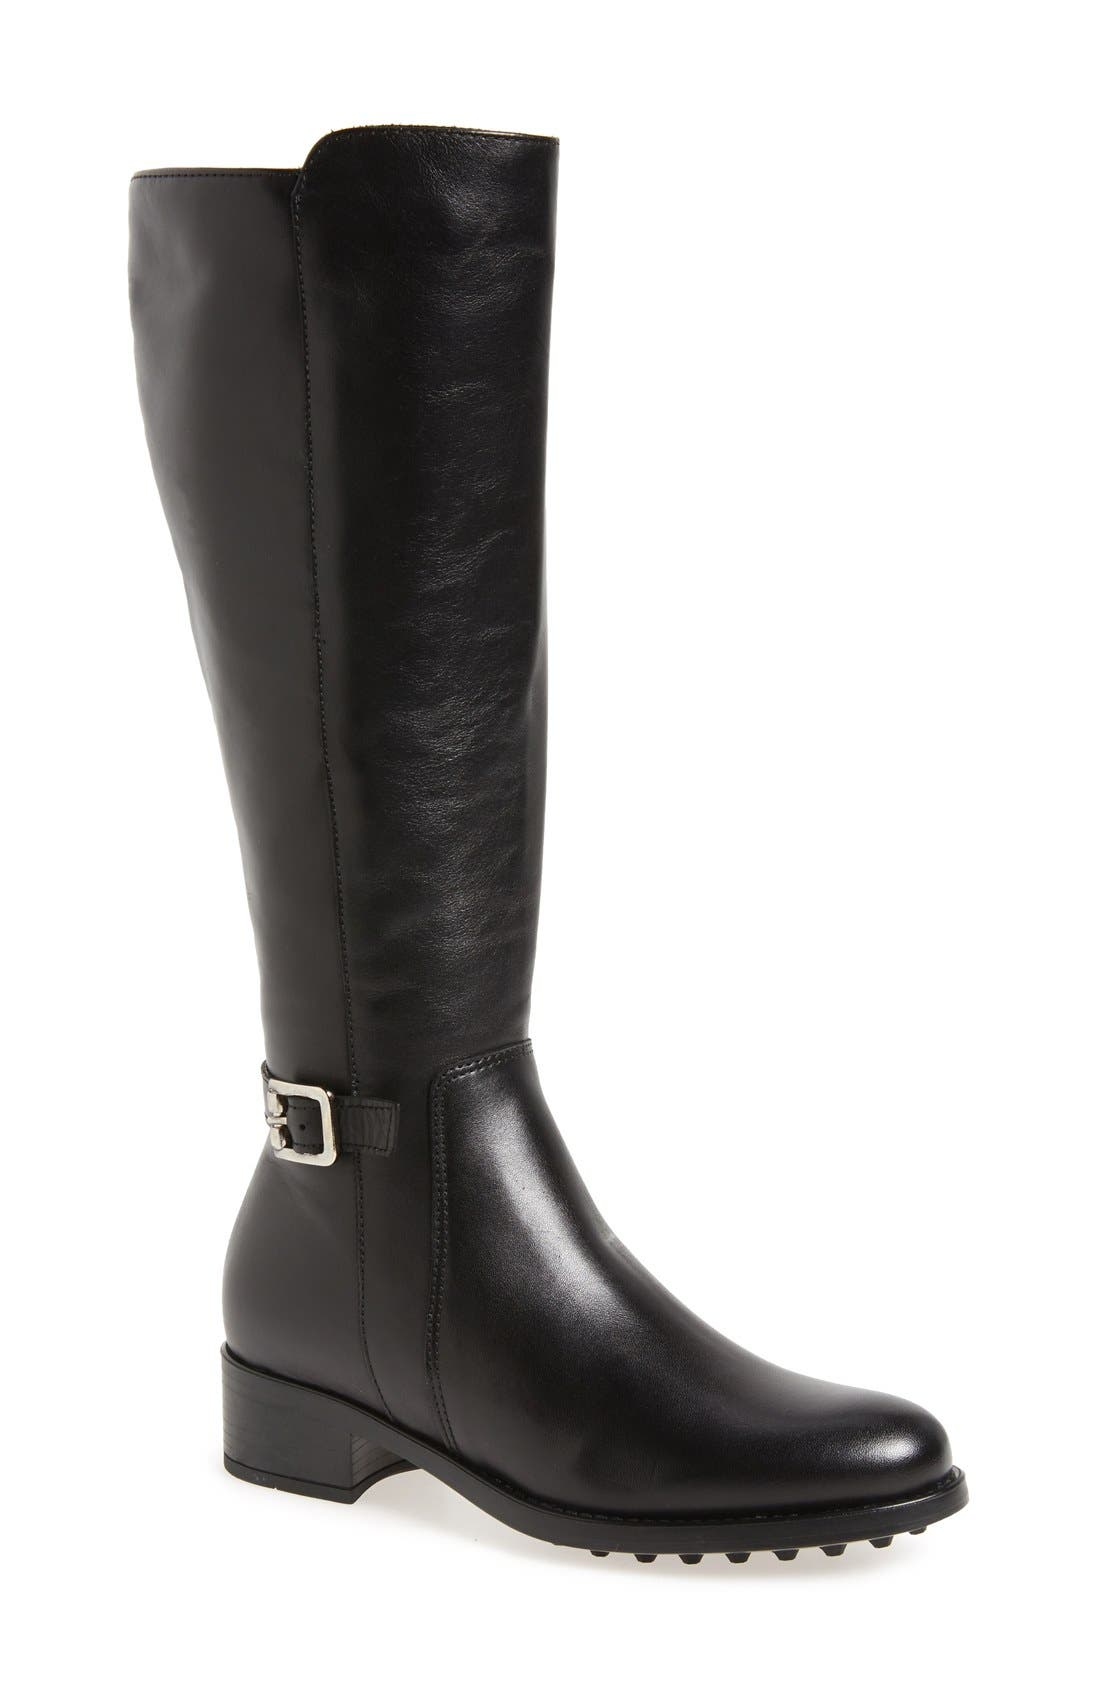 LA CANADIENNE, Silvana Waterproof Riding Boot, Main thumbnail 1, color, BLACK LEATHER